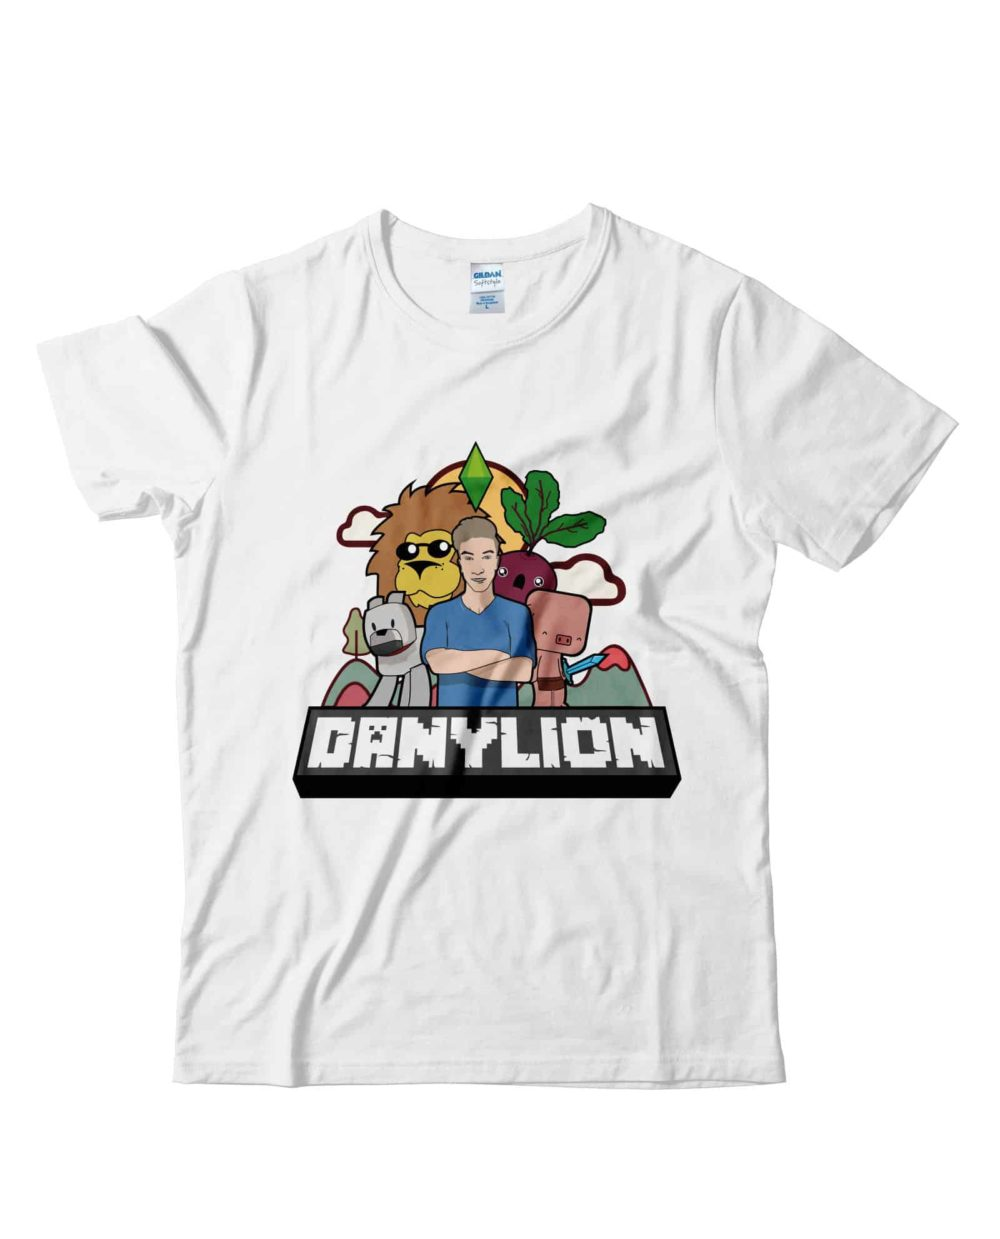 Danylion-tshirt-ufficiale-cartoon-tubeshop-italia-youtube